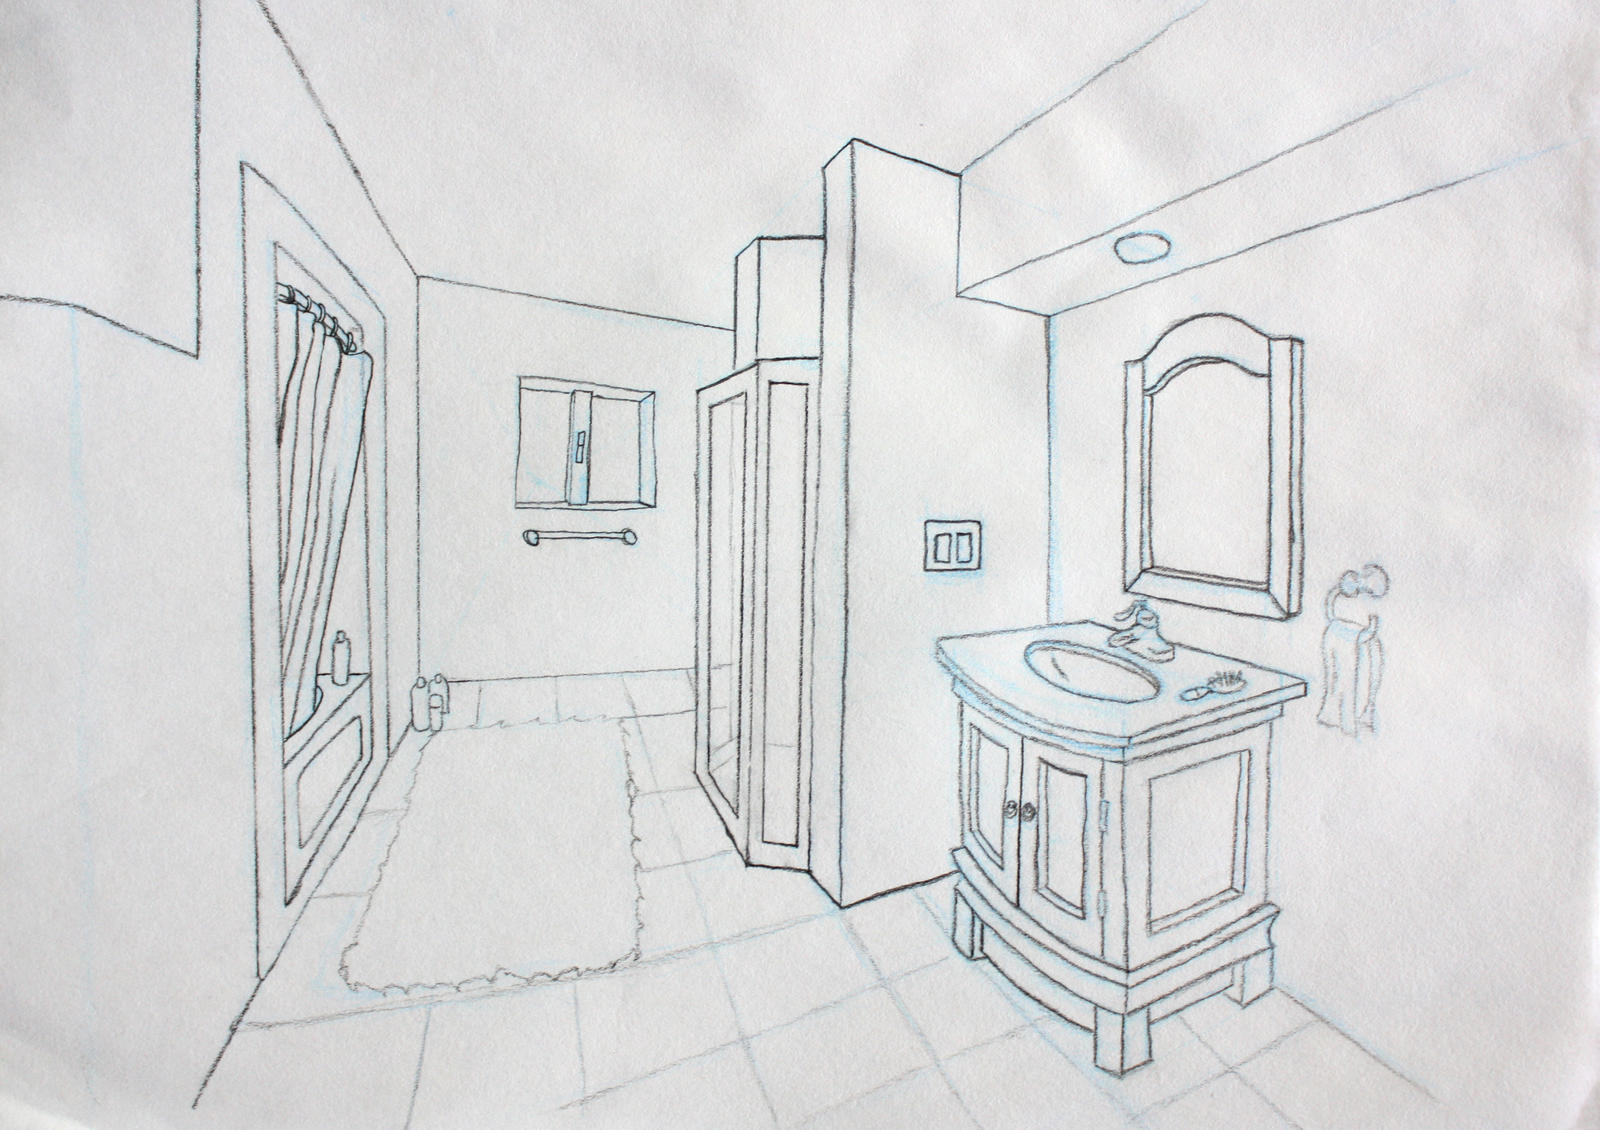 Bathroom perspective drawing - Bathroom Perspective By Andrewosis On Deviantart